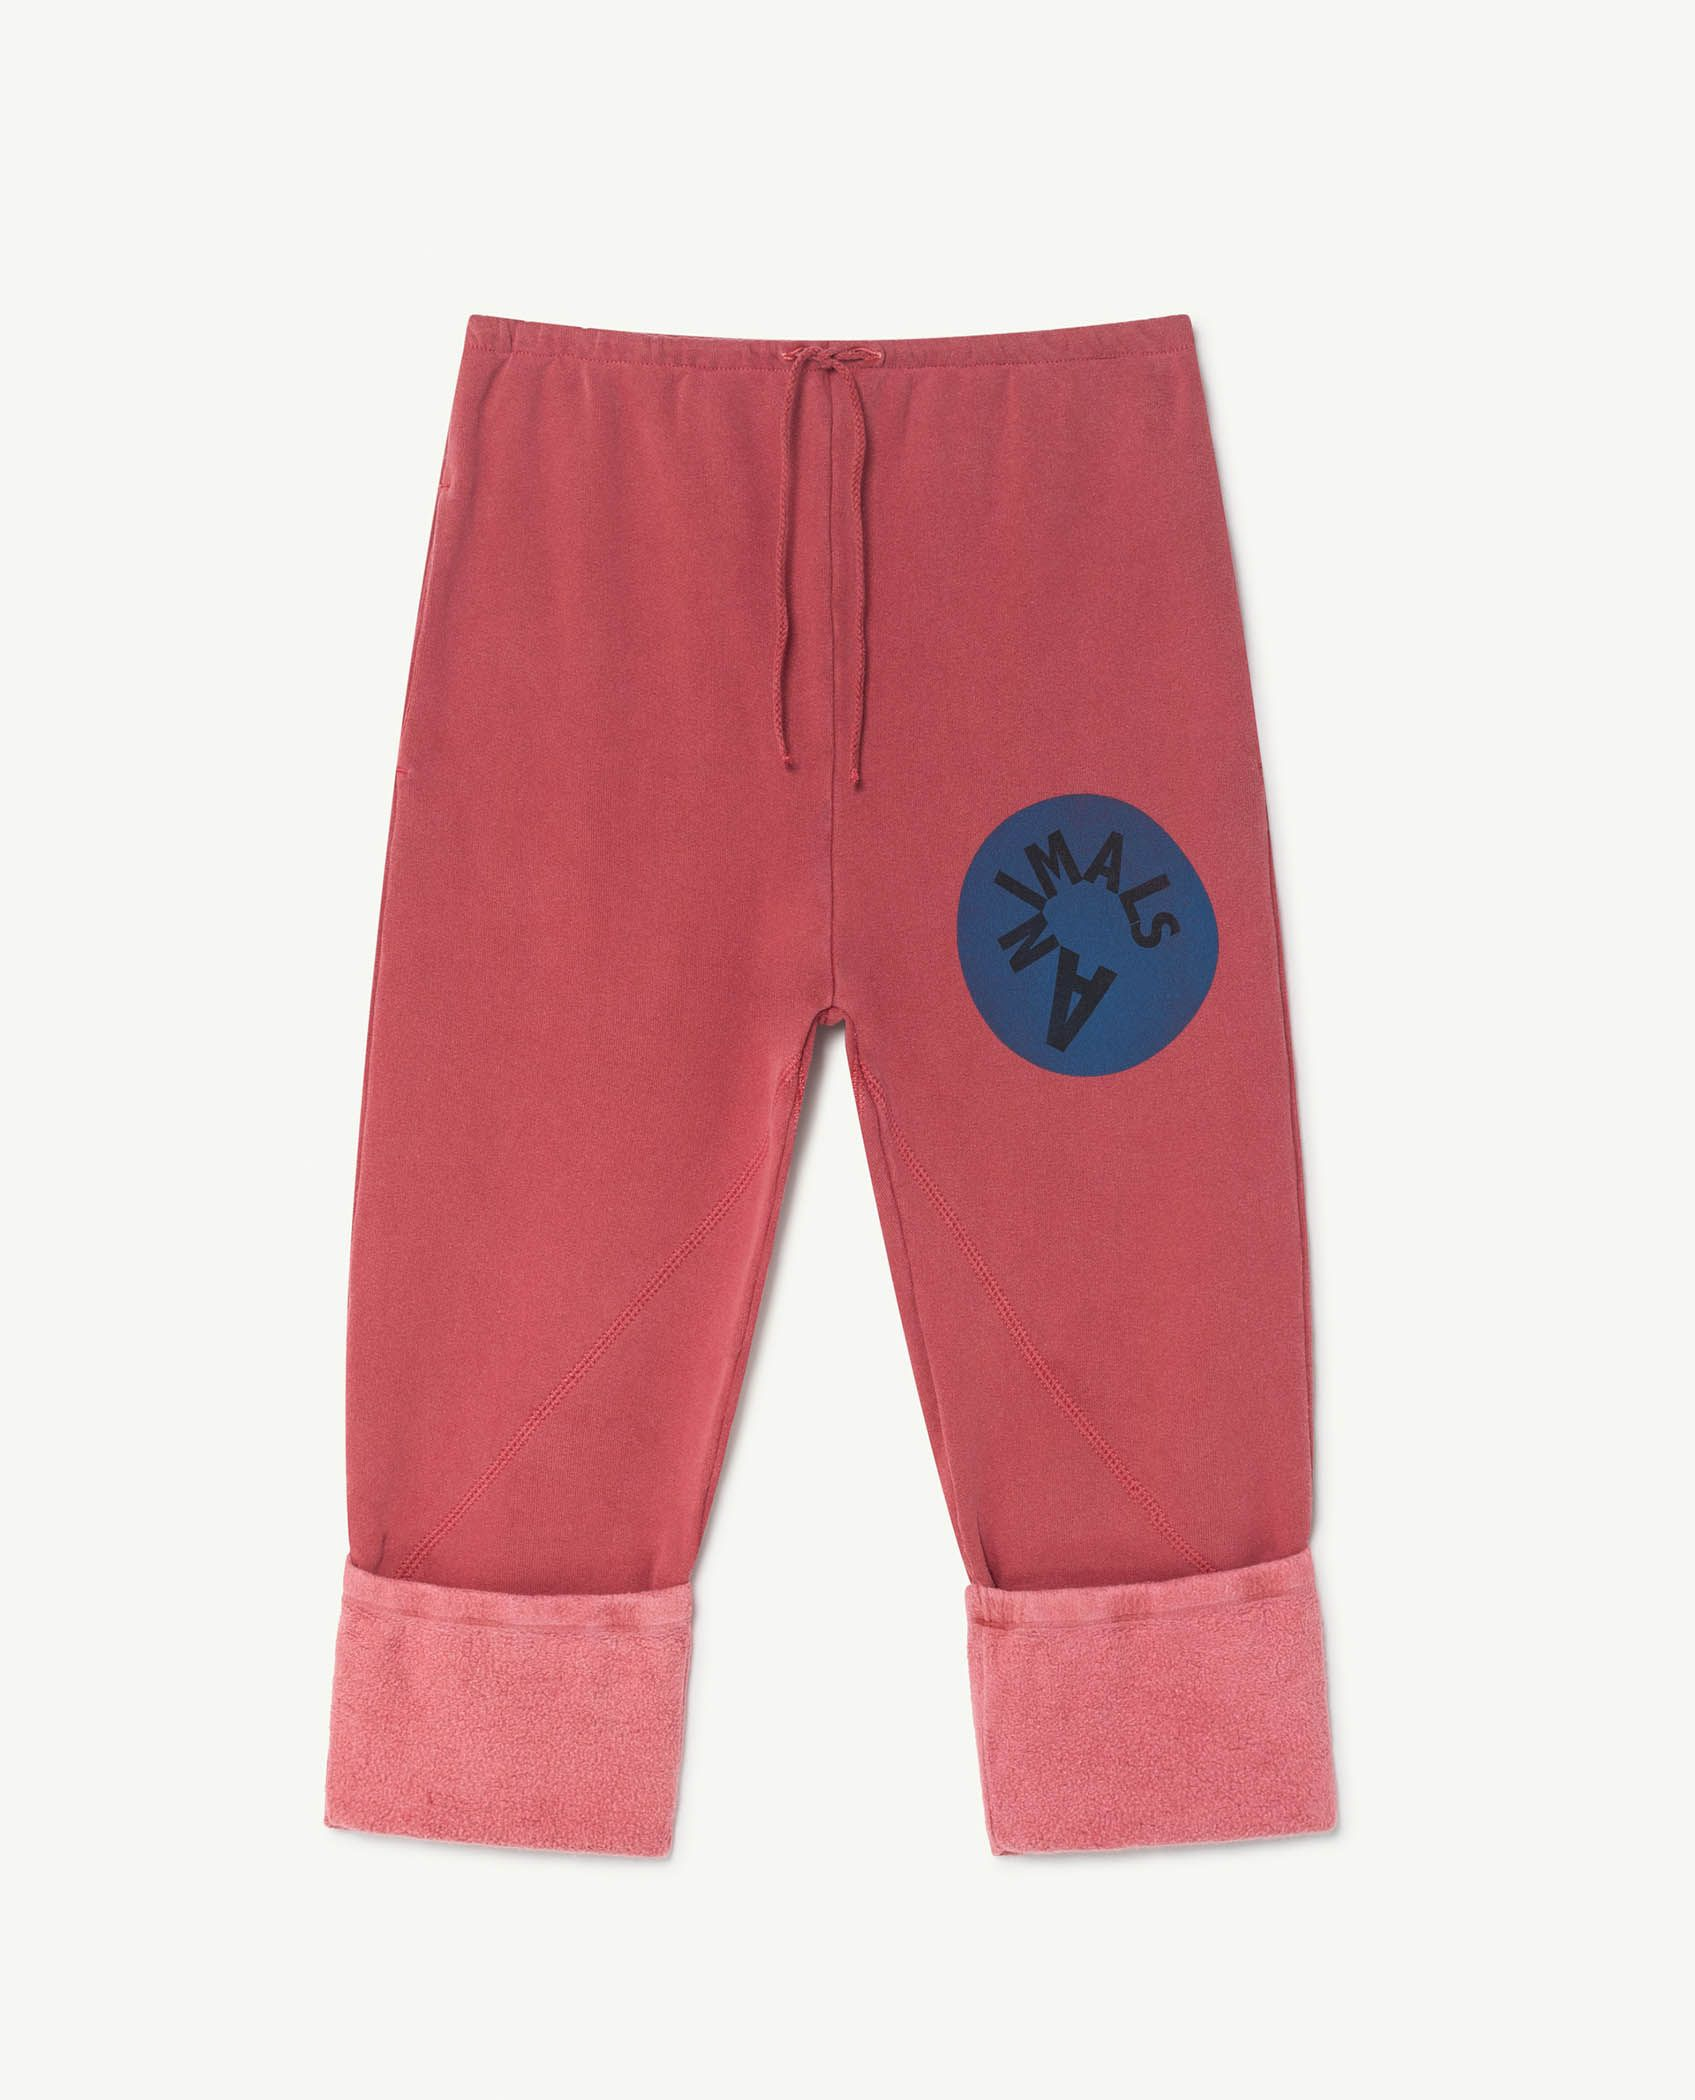 Red Magpie Pants img-1